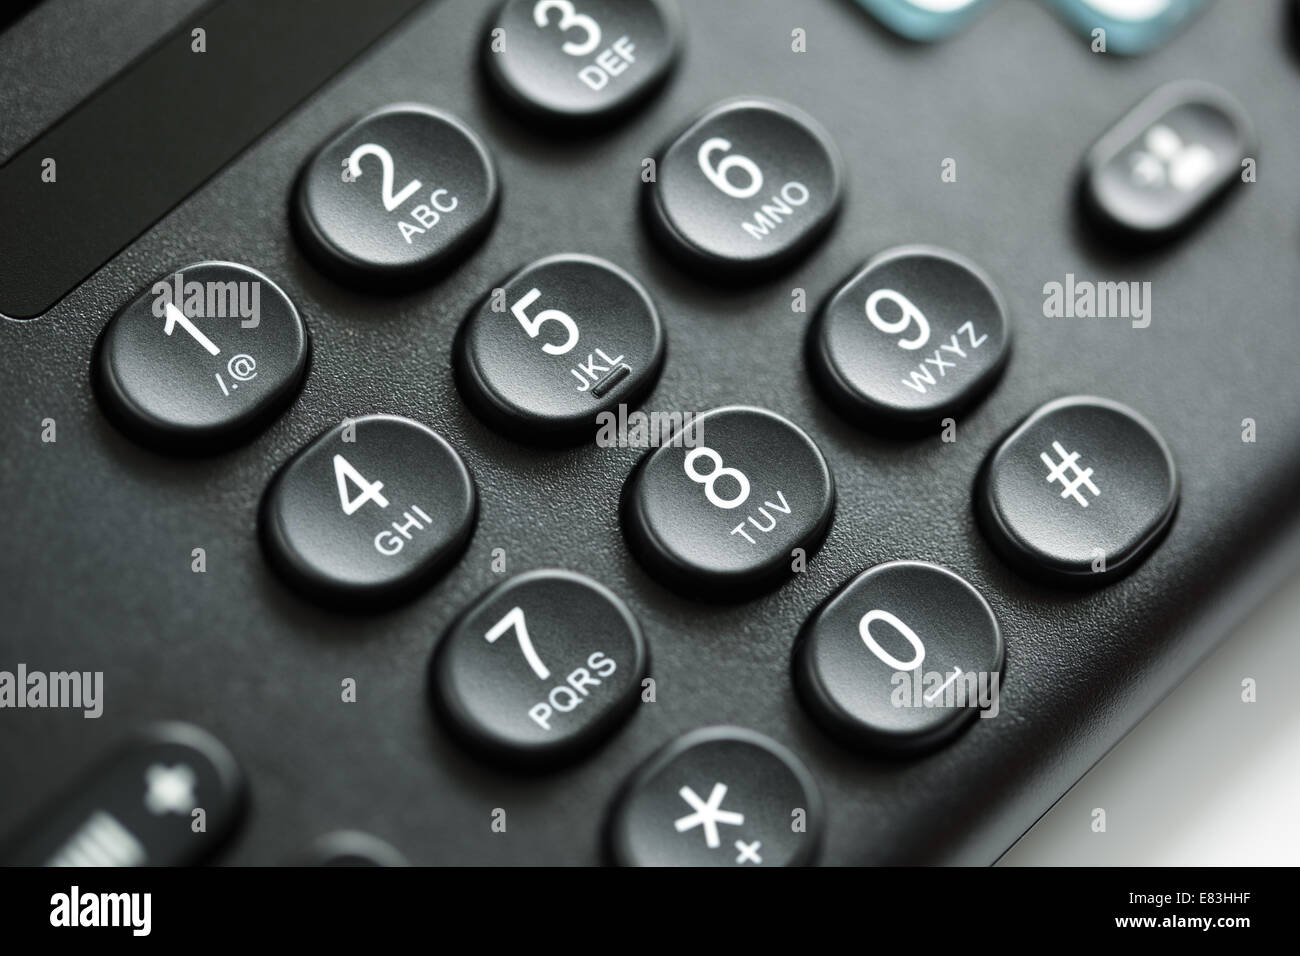 Telephone keypad - Stock Image